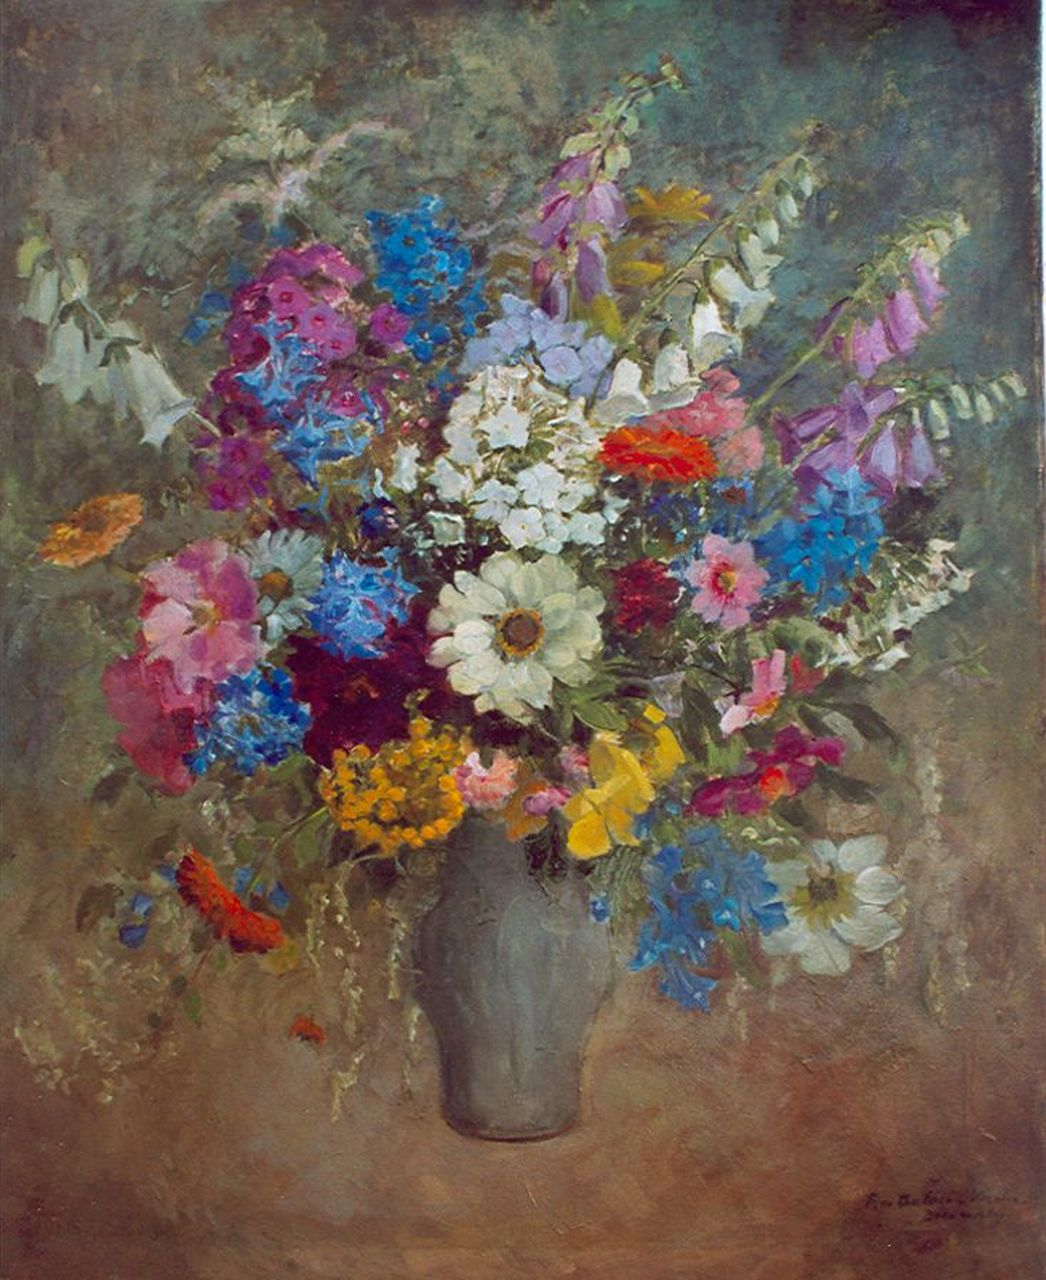 Rie de Balbian Verster-Bolderhey | Field flowers in a vase, oil on canvas, 99.5 x 79.5 cm, signed l.r.